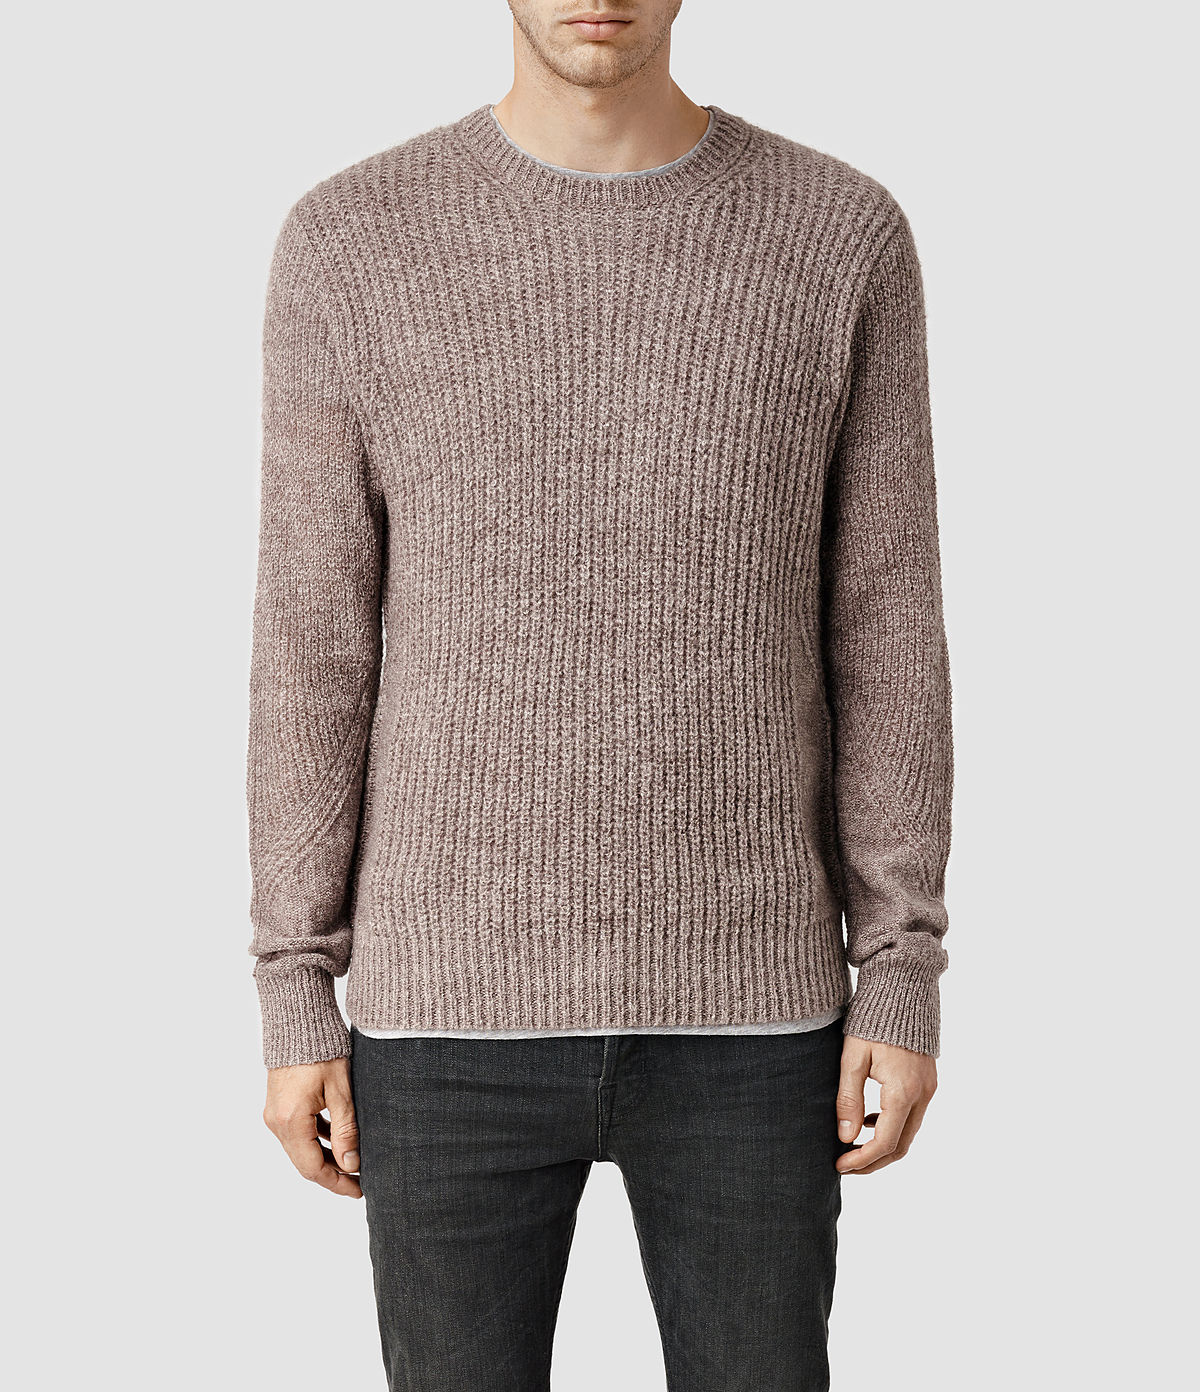 Light Tan Knitted Jumper